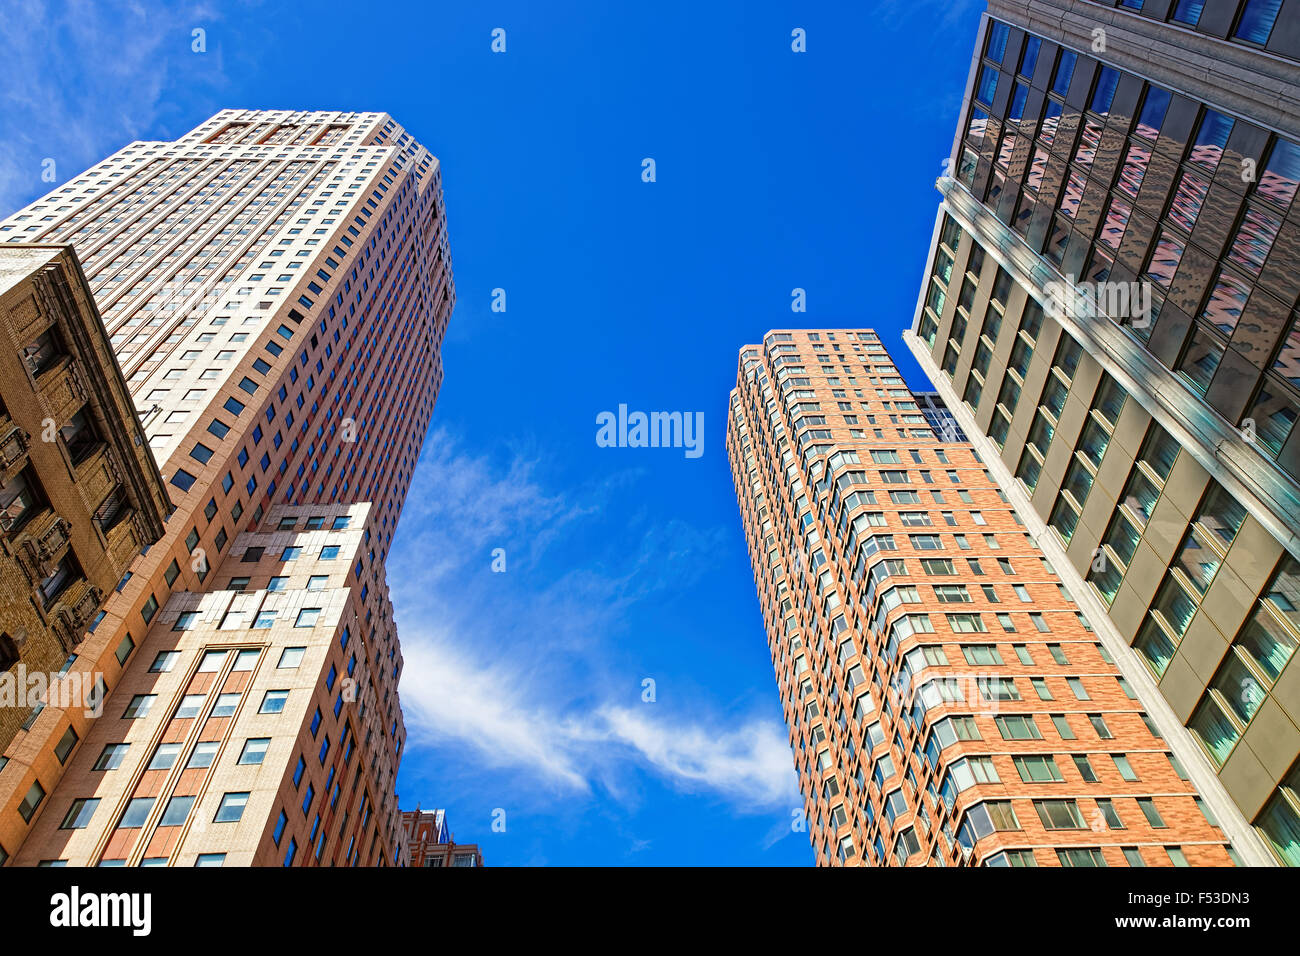 brick high rise new york stockfotos brick high rise new york bilder alamy. Black Bedroom Furniture Sets. Home Design Ideas